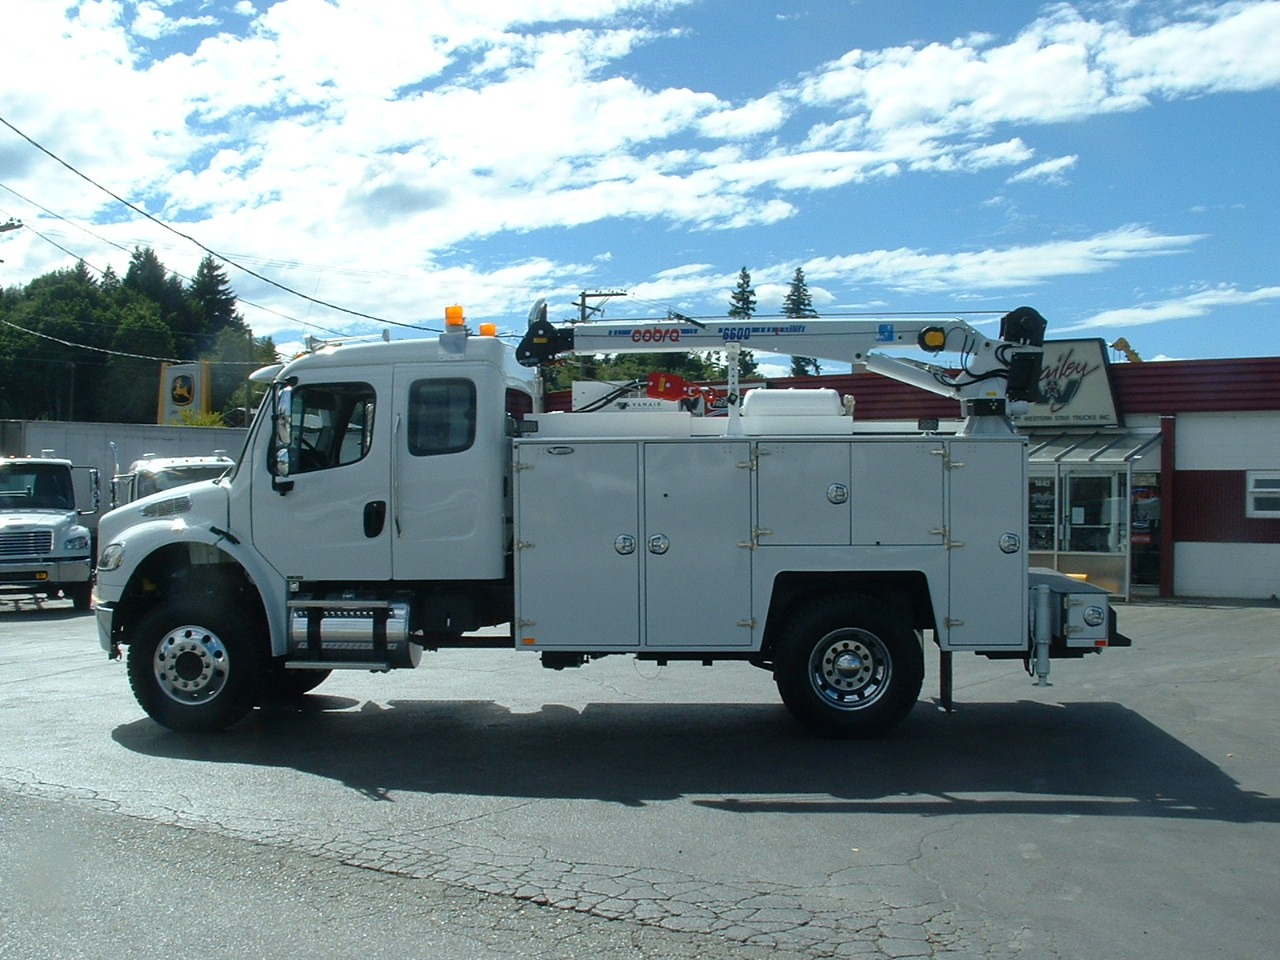 2014 Freightliner M2-132 Ext  Cab 4x4 - Rigged W/ Brutus